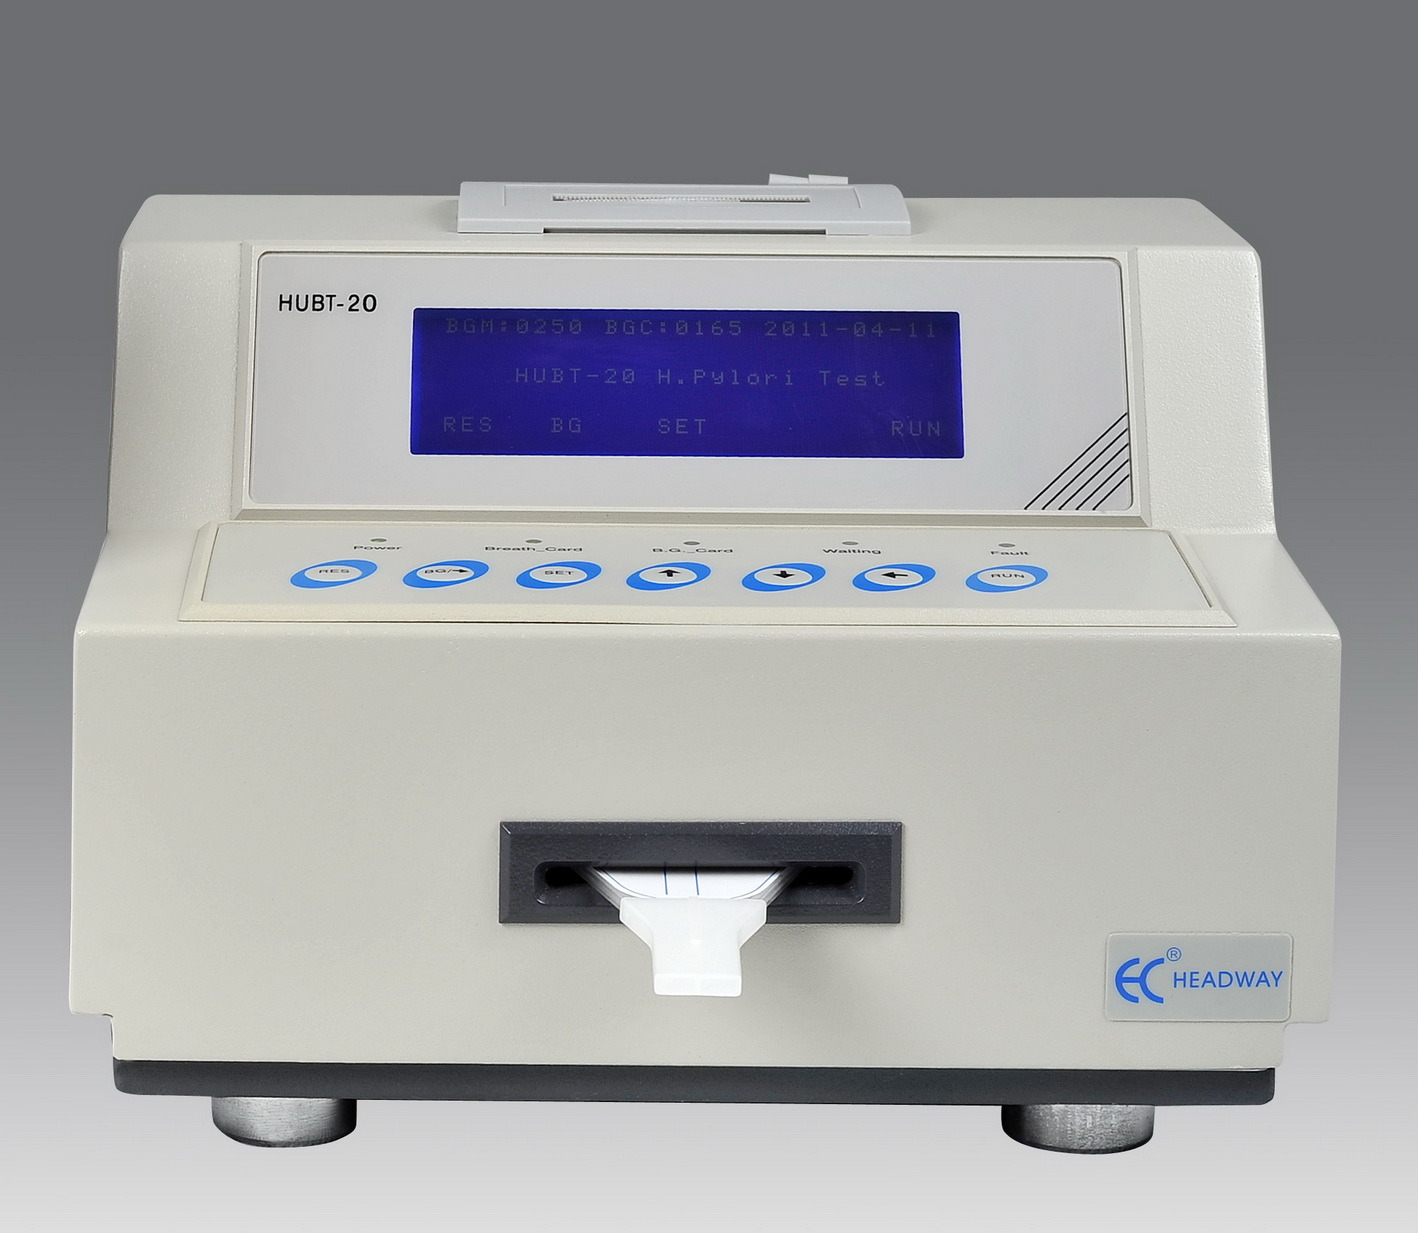 Rapid Test Analyzer for Helicobacter Pylori, Hubt-20